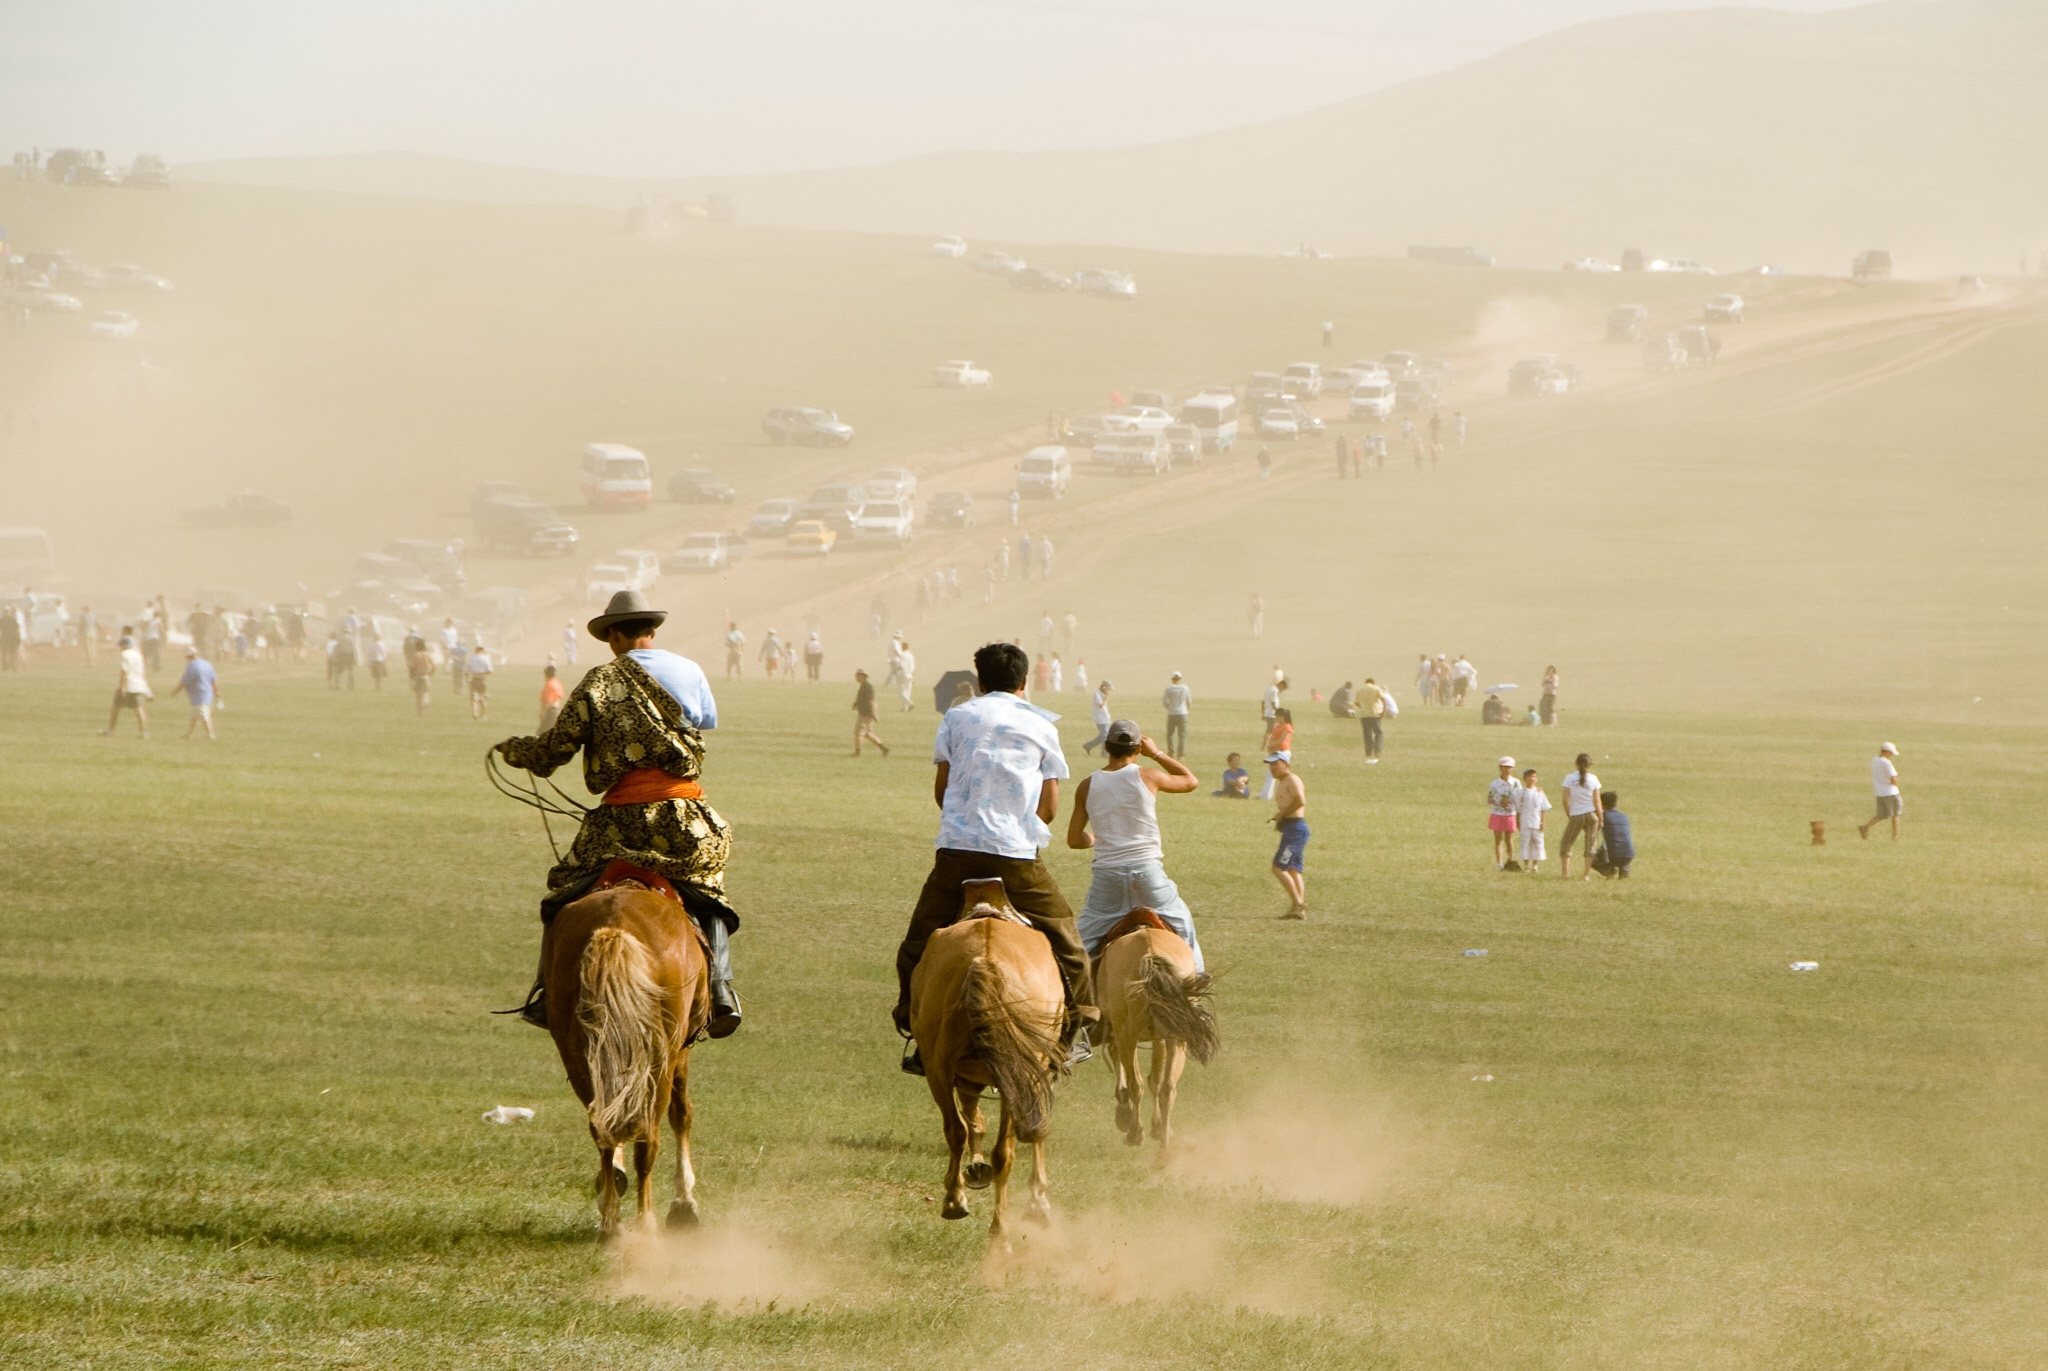 Naadam Festival, Ulaan Baatar, Mongolia, 2007. Naadam celebrates the three manly sports of nomadic Mongolia: wrestling, horse racing and archery.